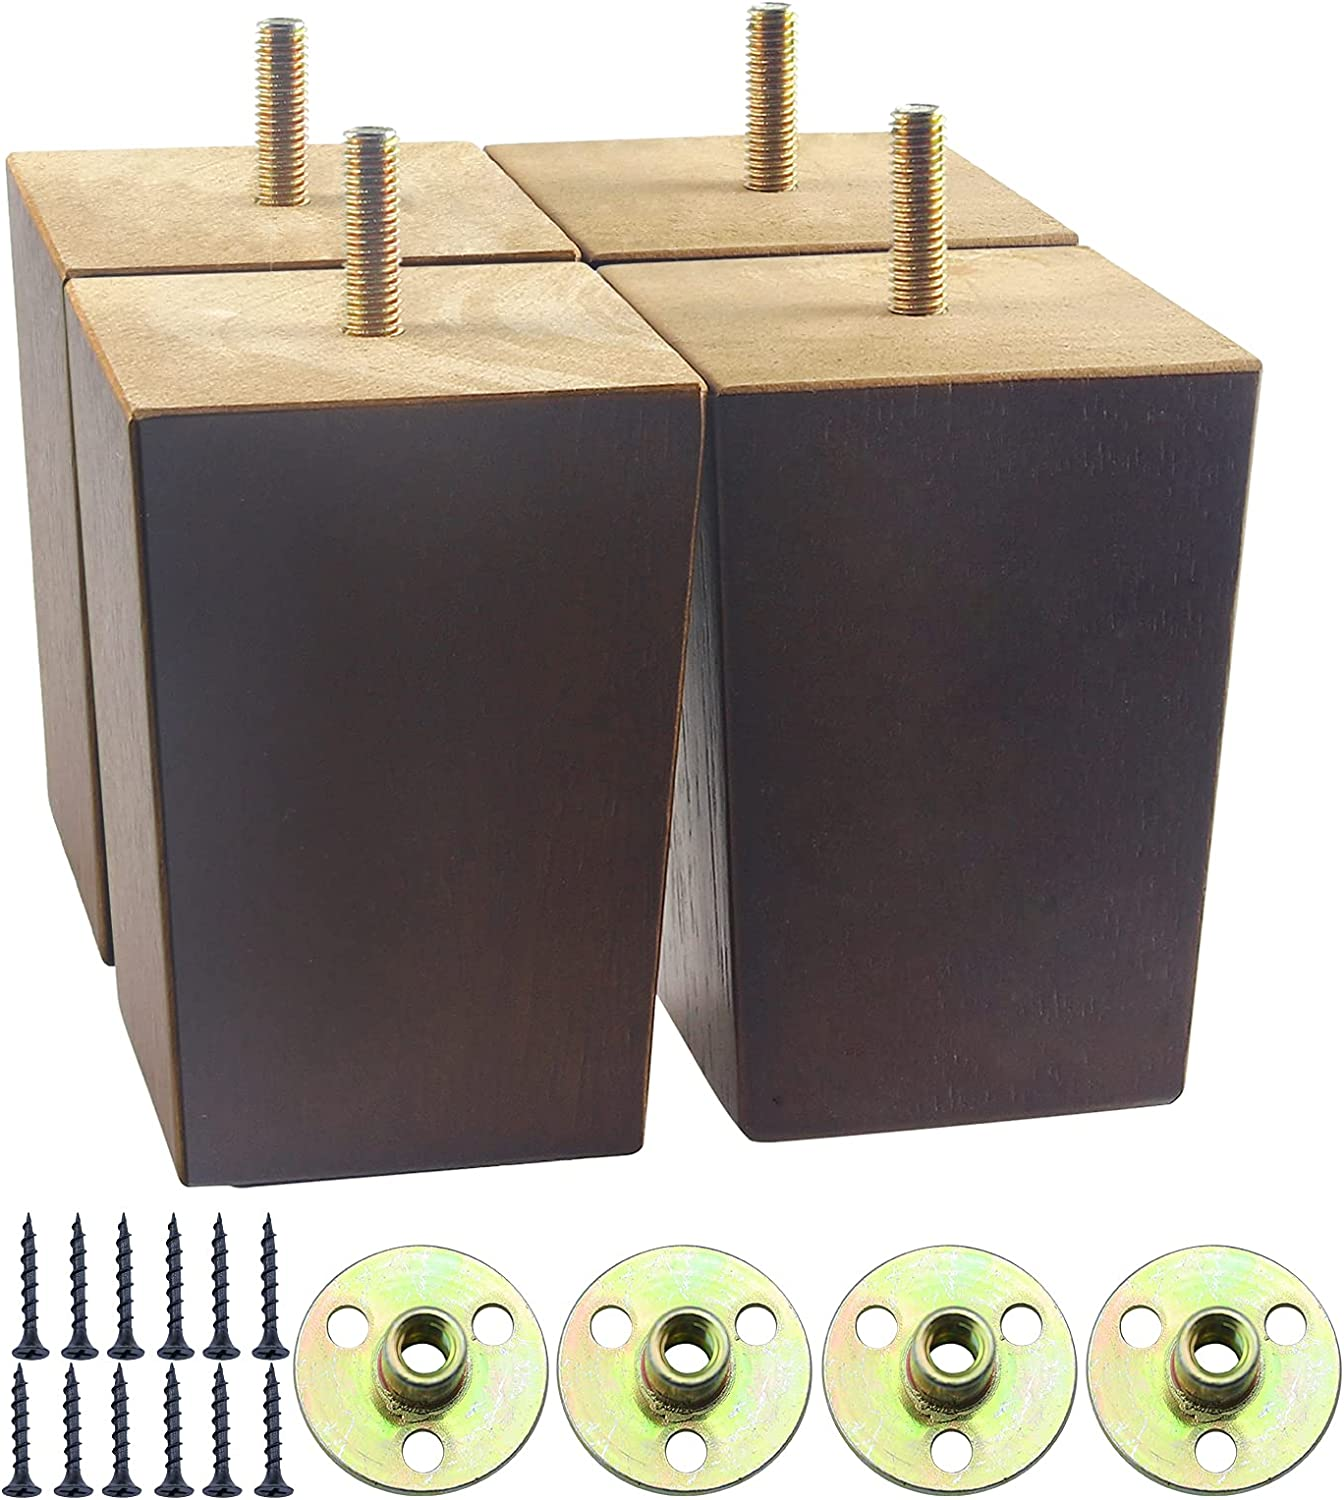 4 inch Wood Furniture Legs, Square Sofa Legs for Furniture Set of 4, Mid-Century Modern Couch Legs Replacement for Bed,Armchair, Loveseat, Dresser, Ottoman Cabinet, Nightstand